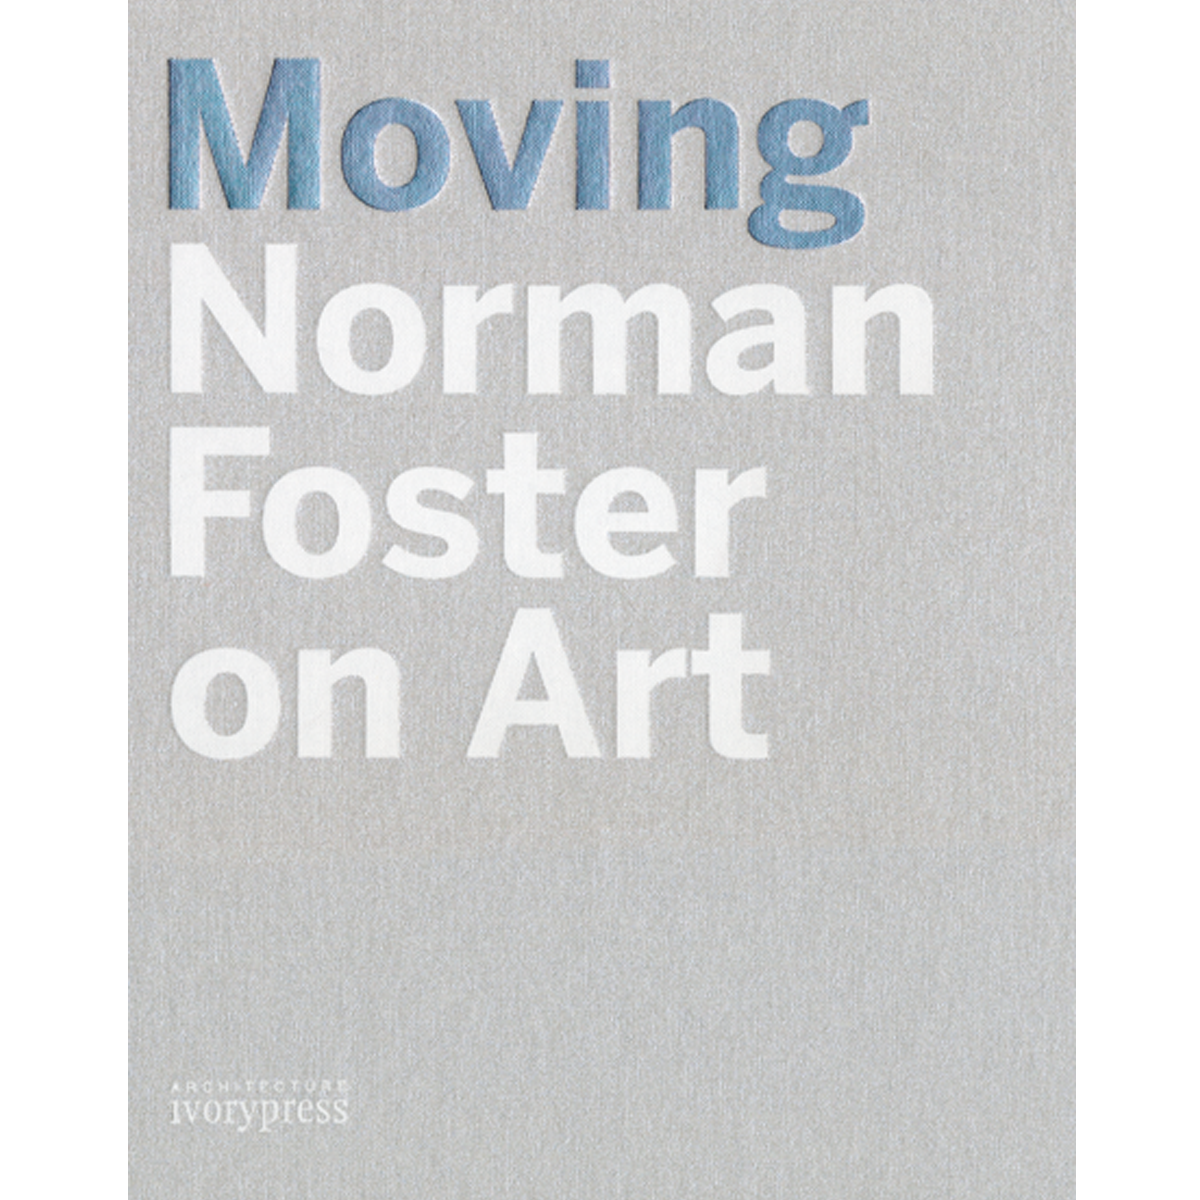 Moving. Norman Foster on Art